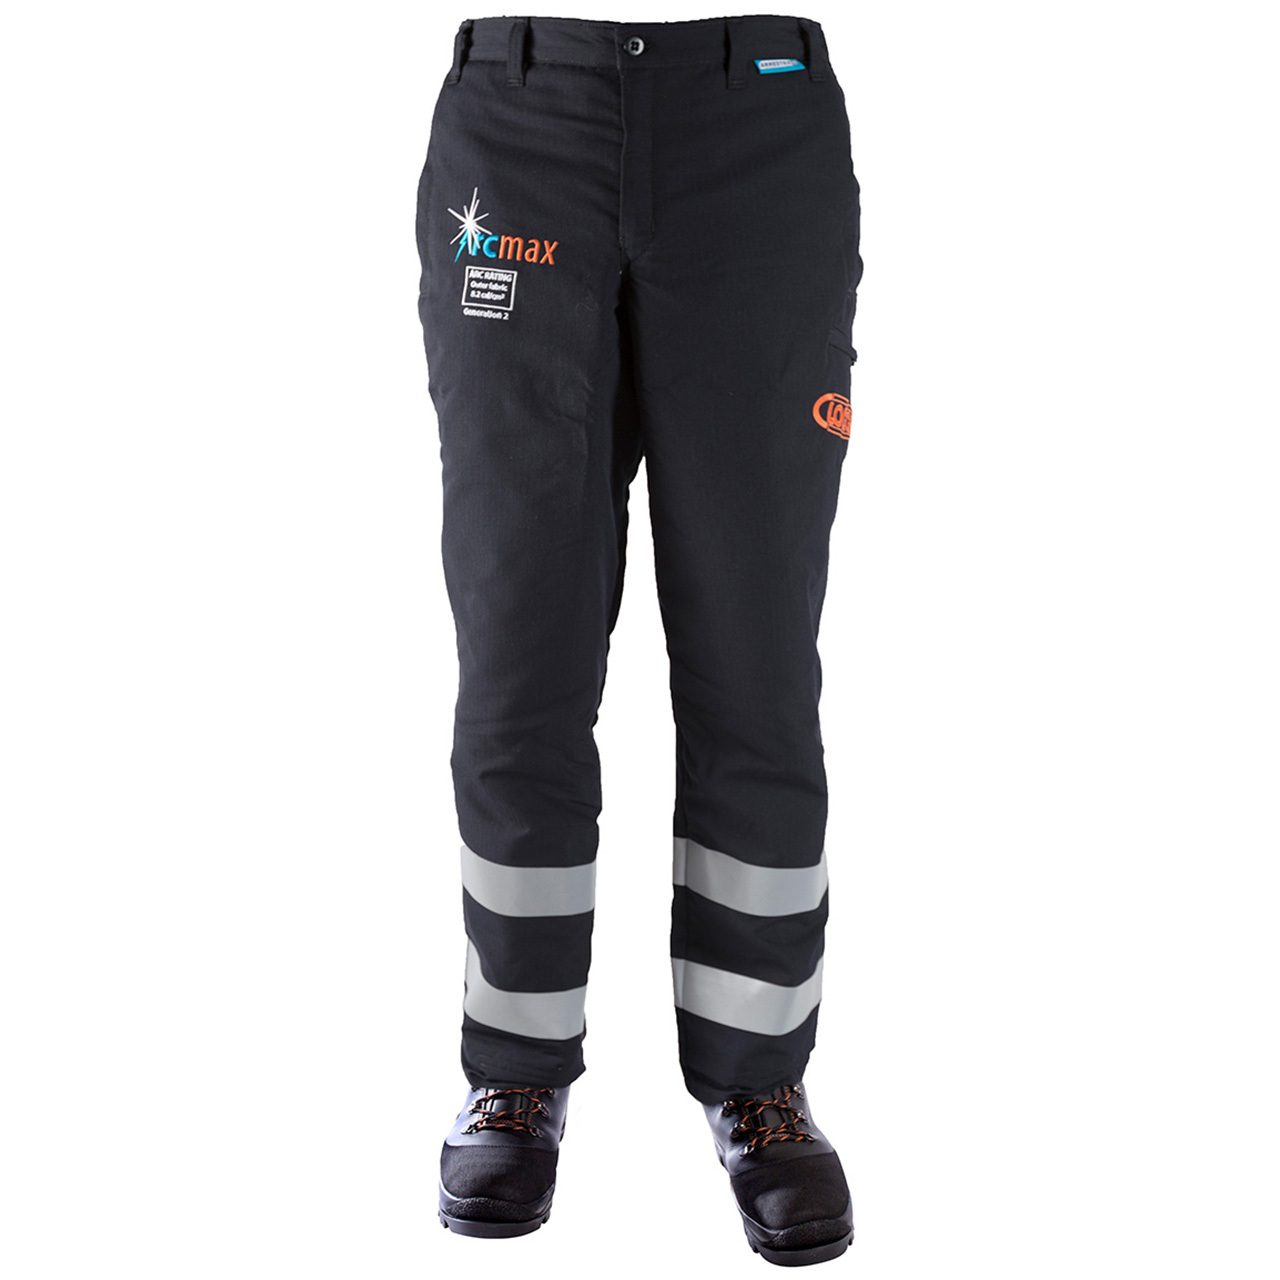 Clogger Arcmax Arc Rated Fire Resistant Men's Chainsaw Pants